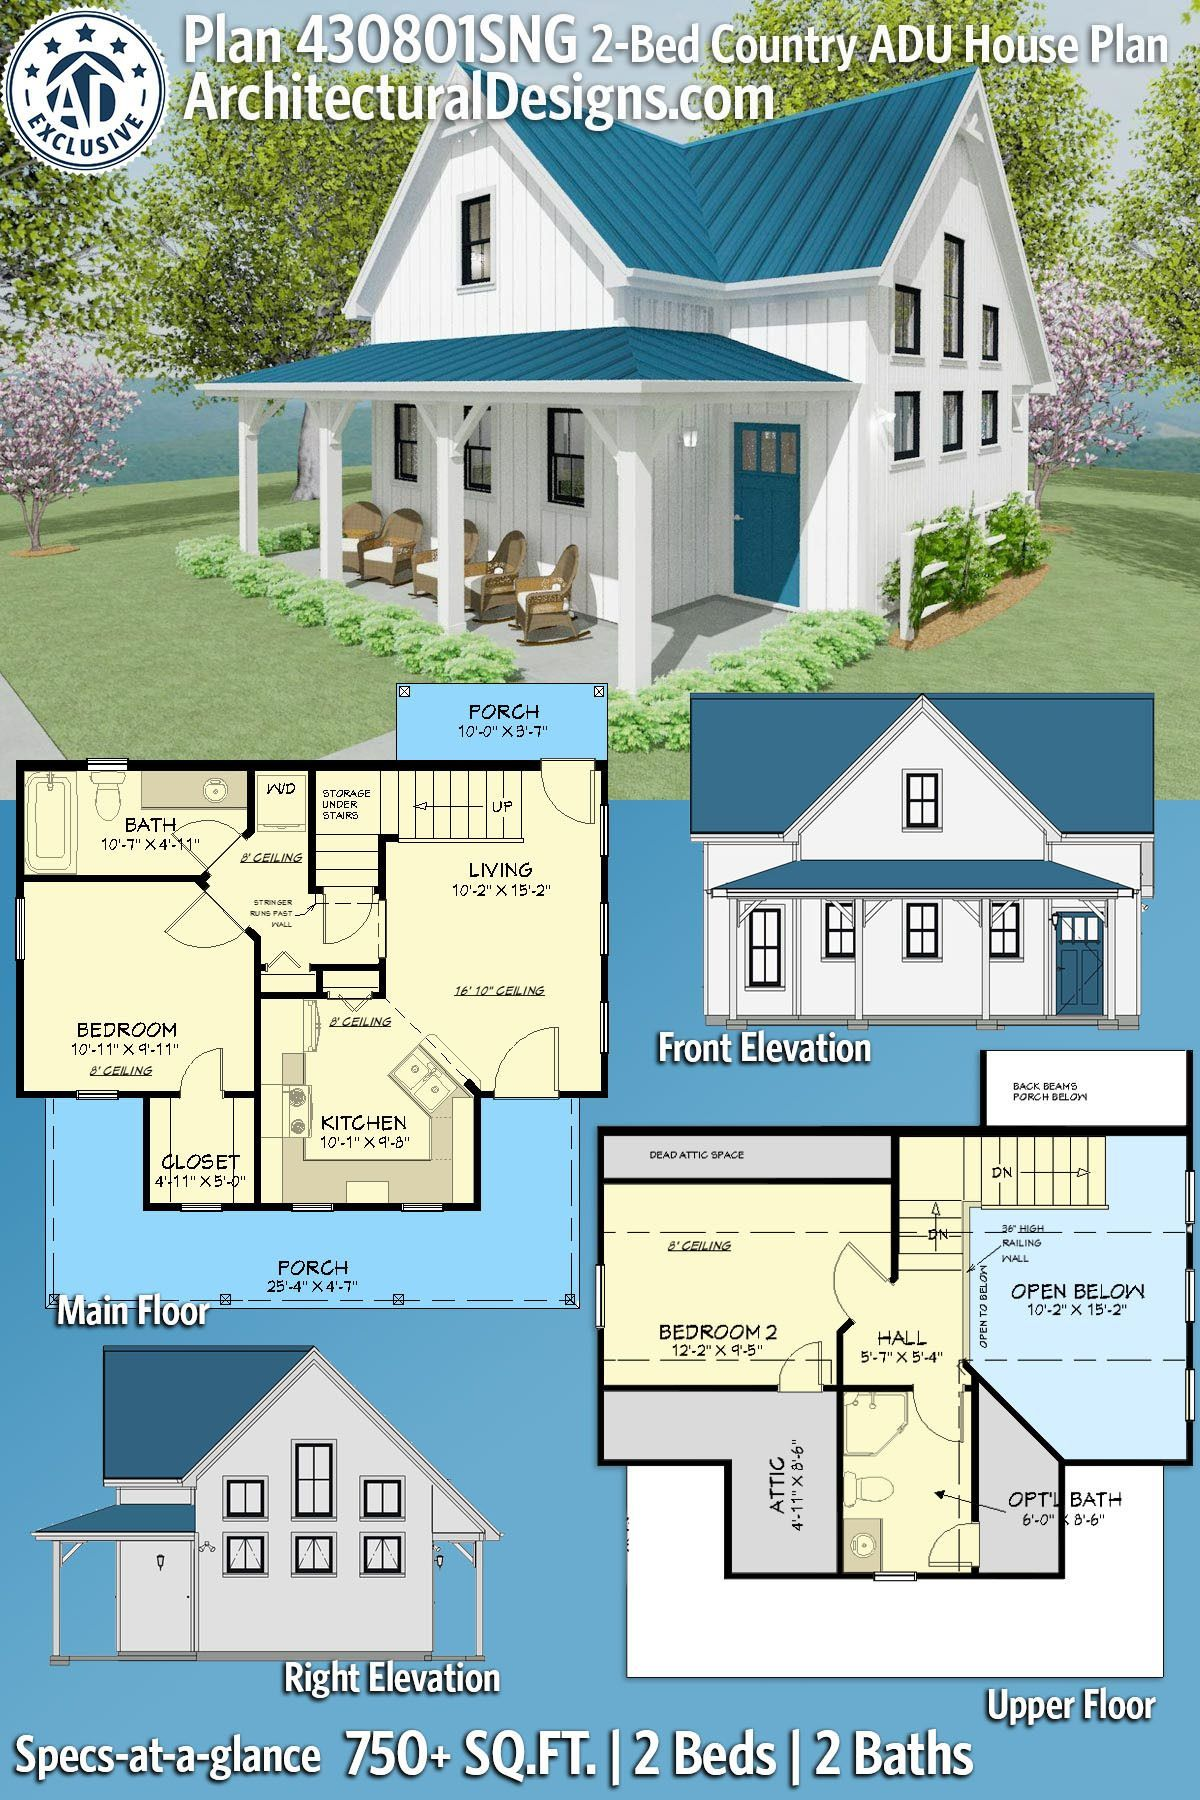 Plan 430801sng Exclusive Adu 2 Bed Country Farmhouse Plan Guest House Pool House Plans House Plans Farmhouse Cottage House Plans